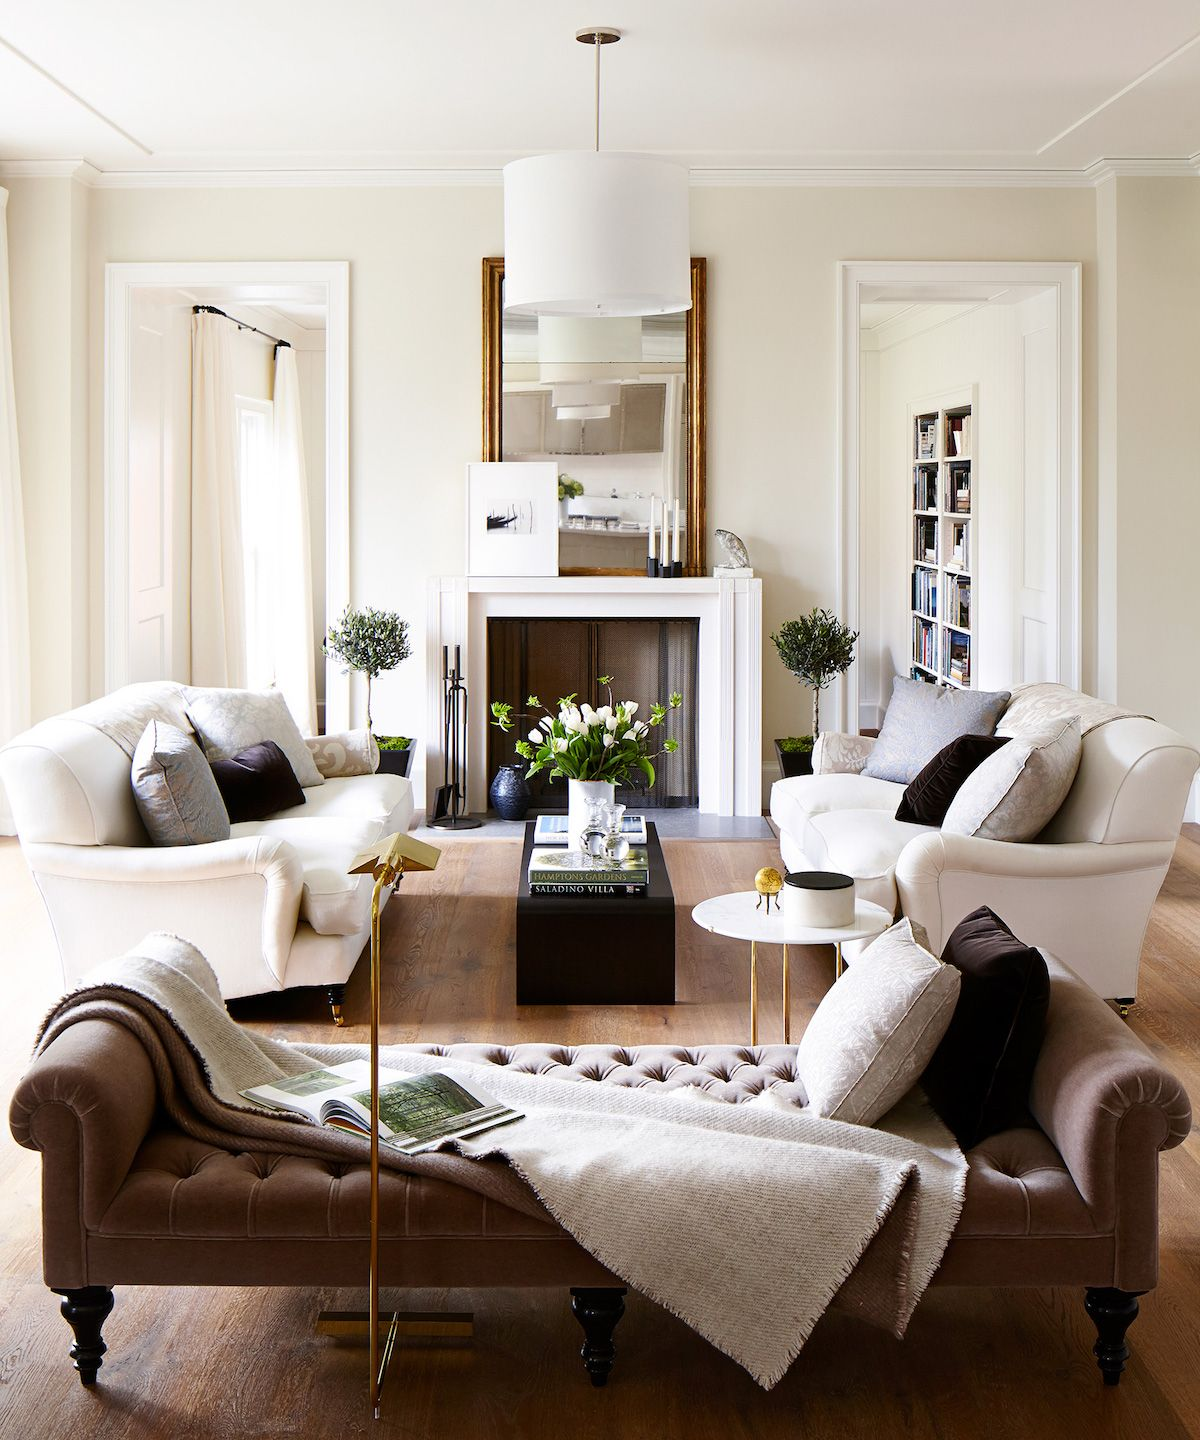 Paint Colors With Cult Followings: 10 Picks From The Remodelista Architect  U0026 Designer Directory: Cream And White Living RoomLiving Room White ... Nice Design